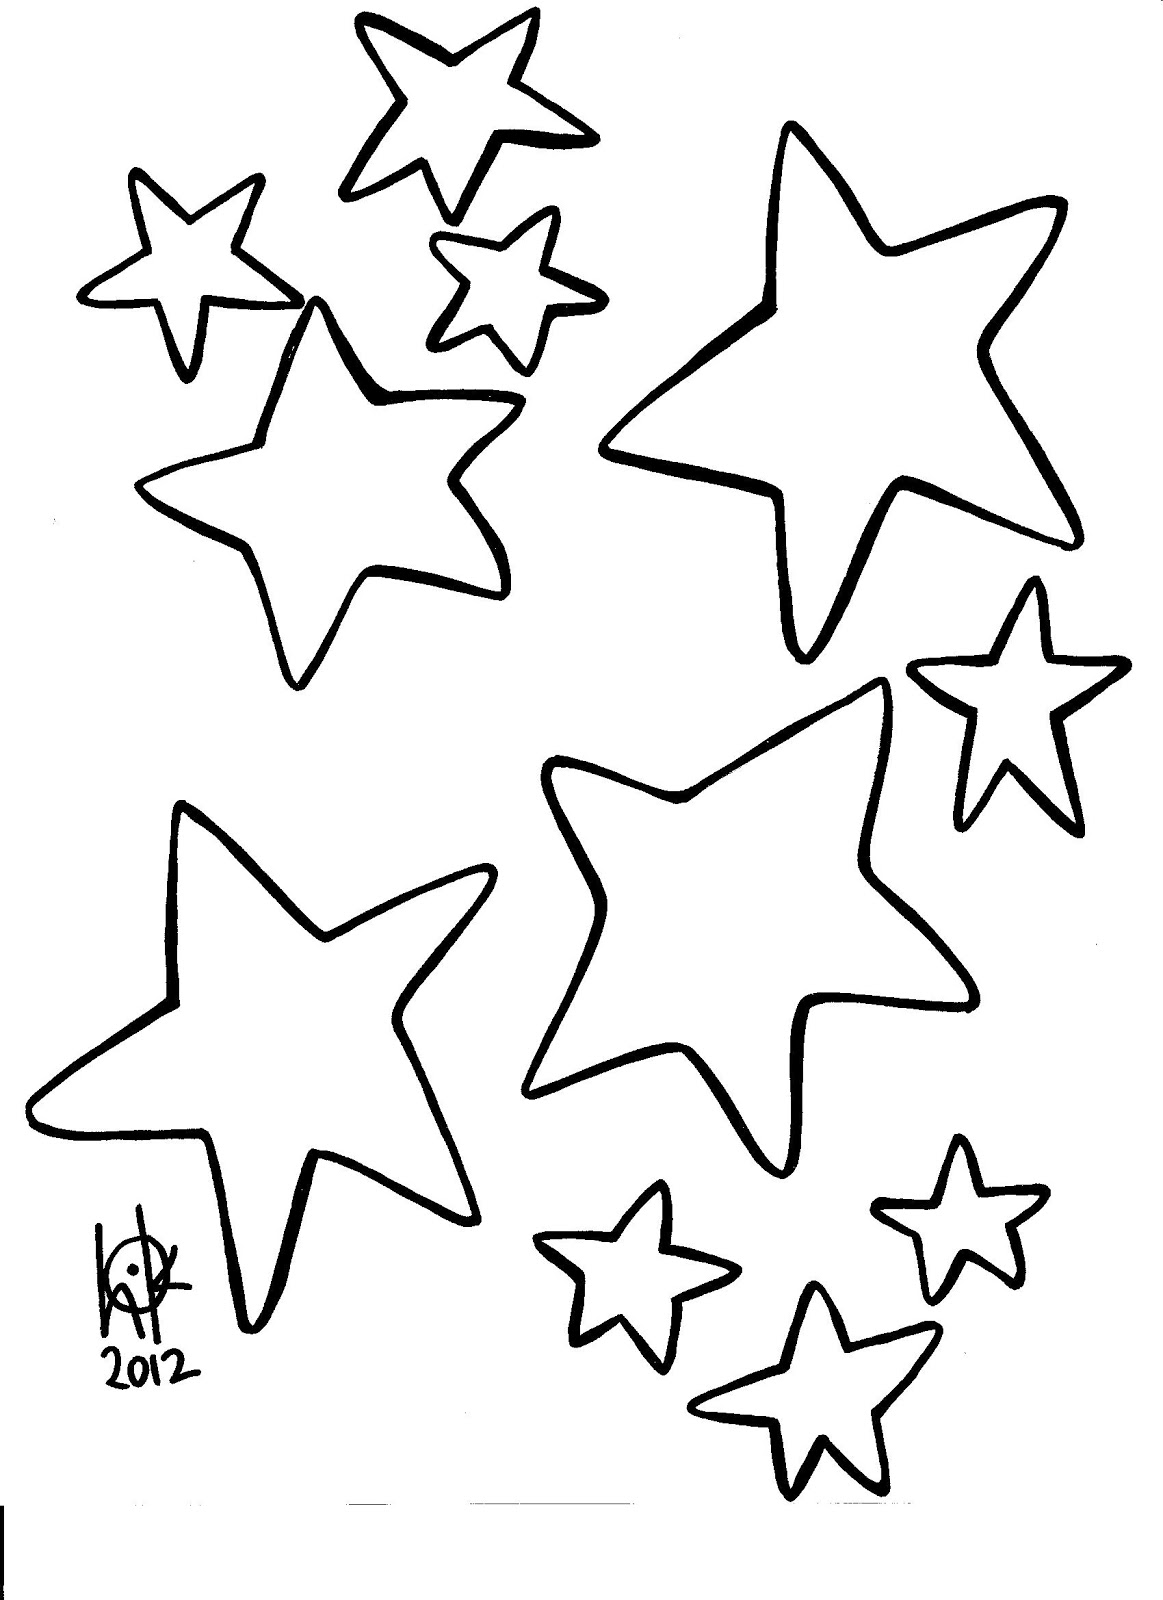 coloring pages of stars artist holiday coloring book creation pages of stars coloring